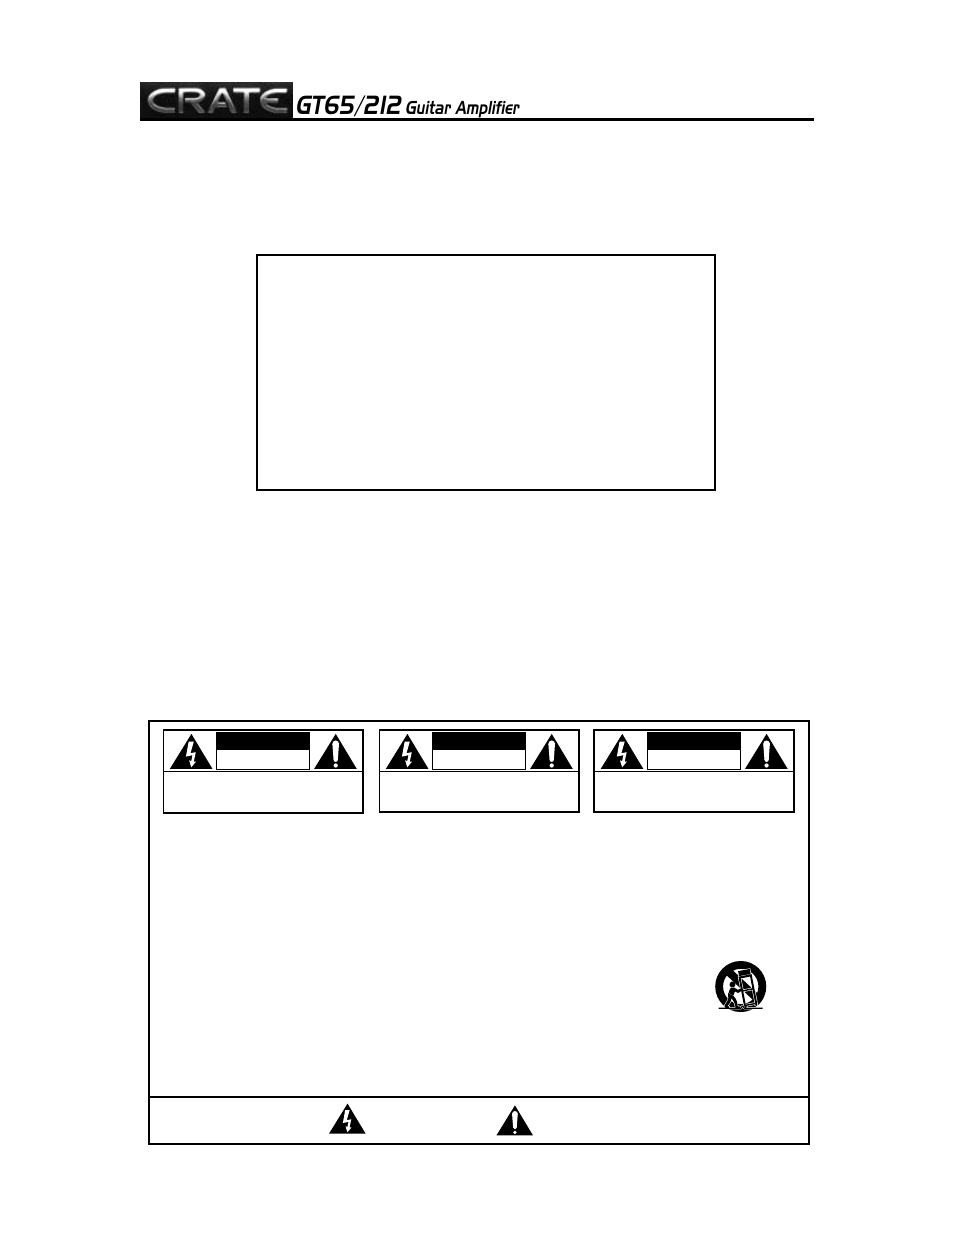 Crate amplifiers gt65212 user manual page 2 8 ccuart Choice Image